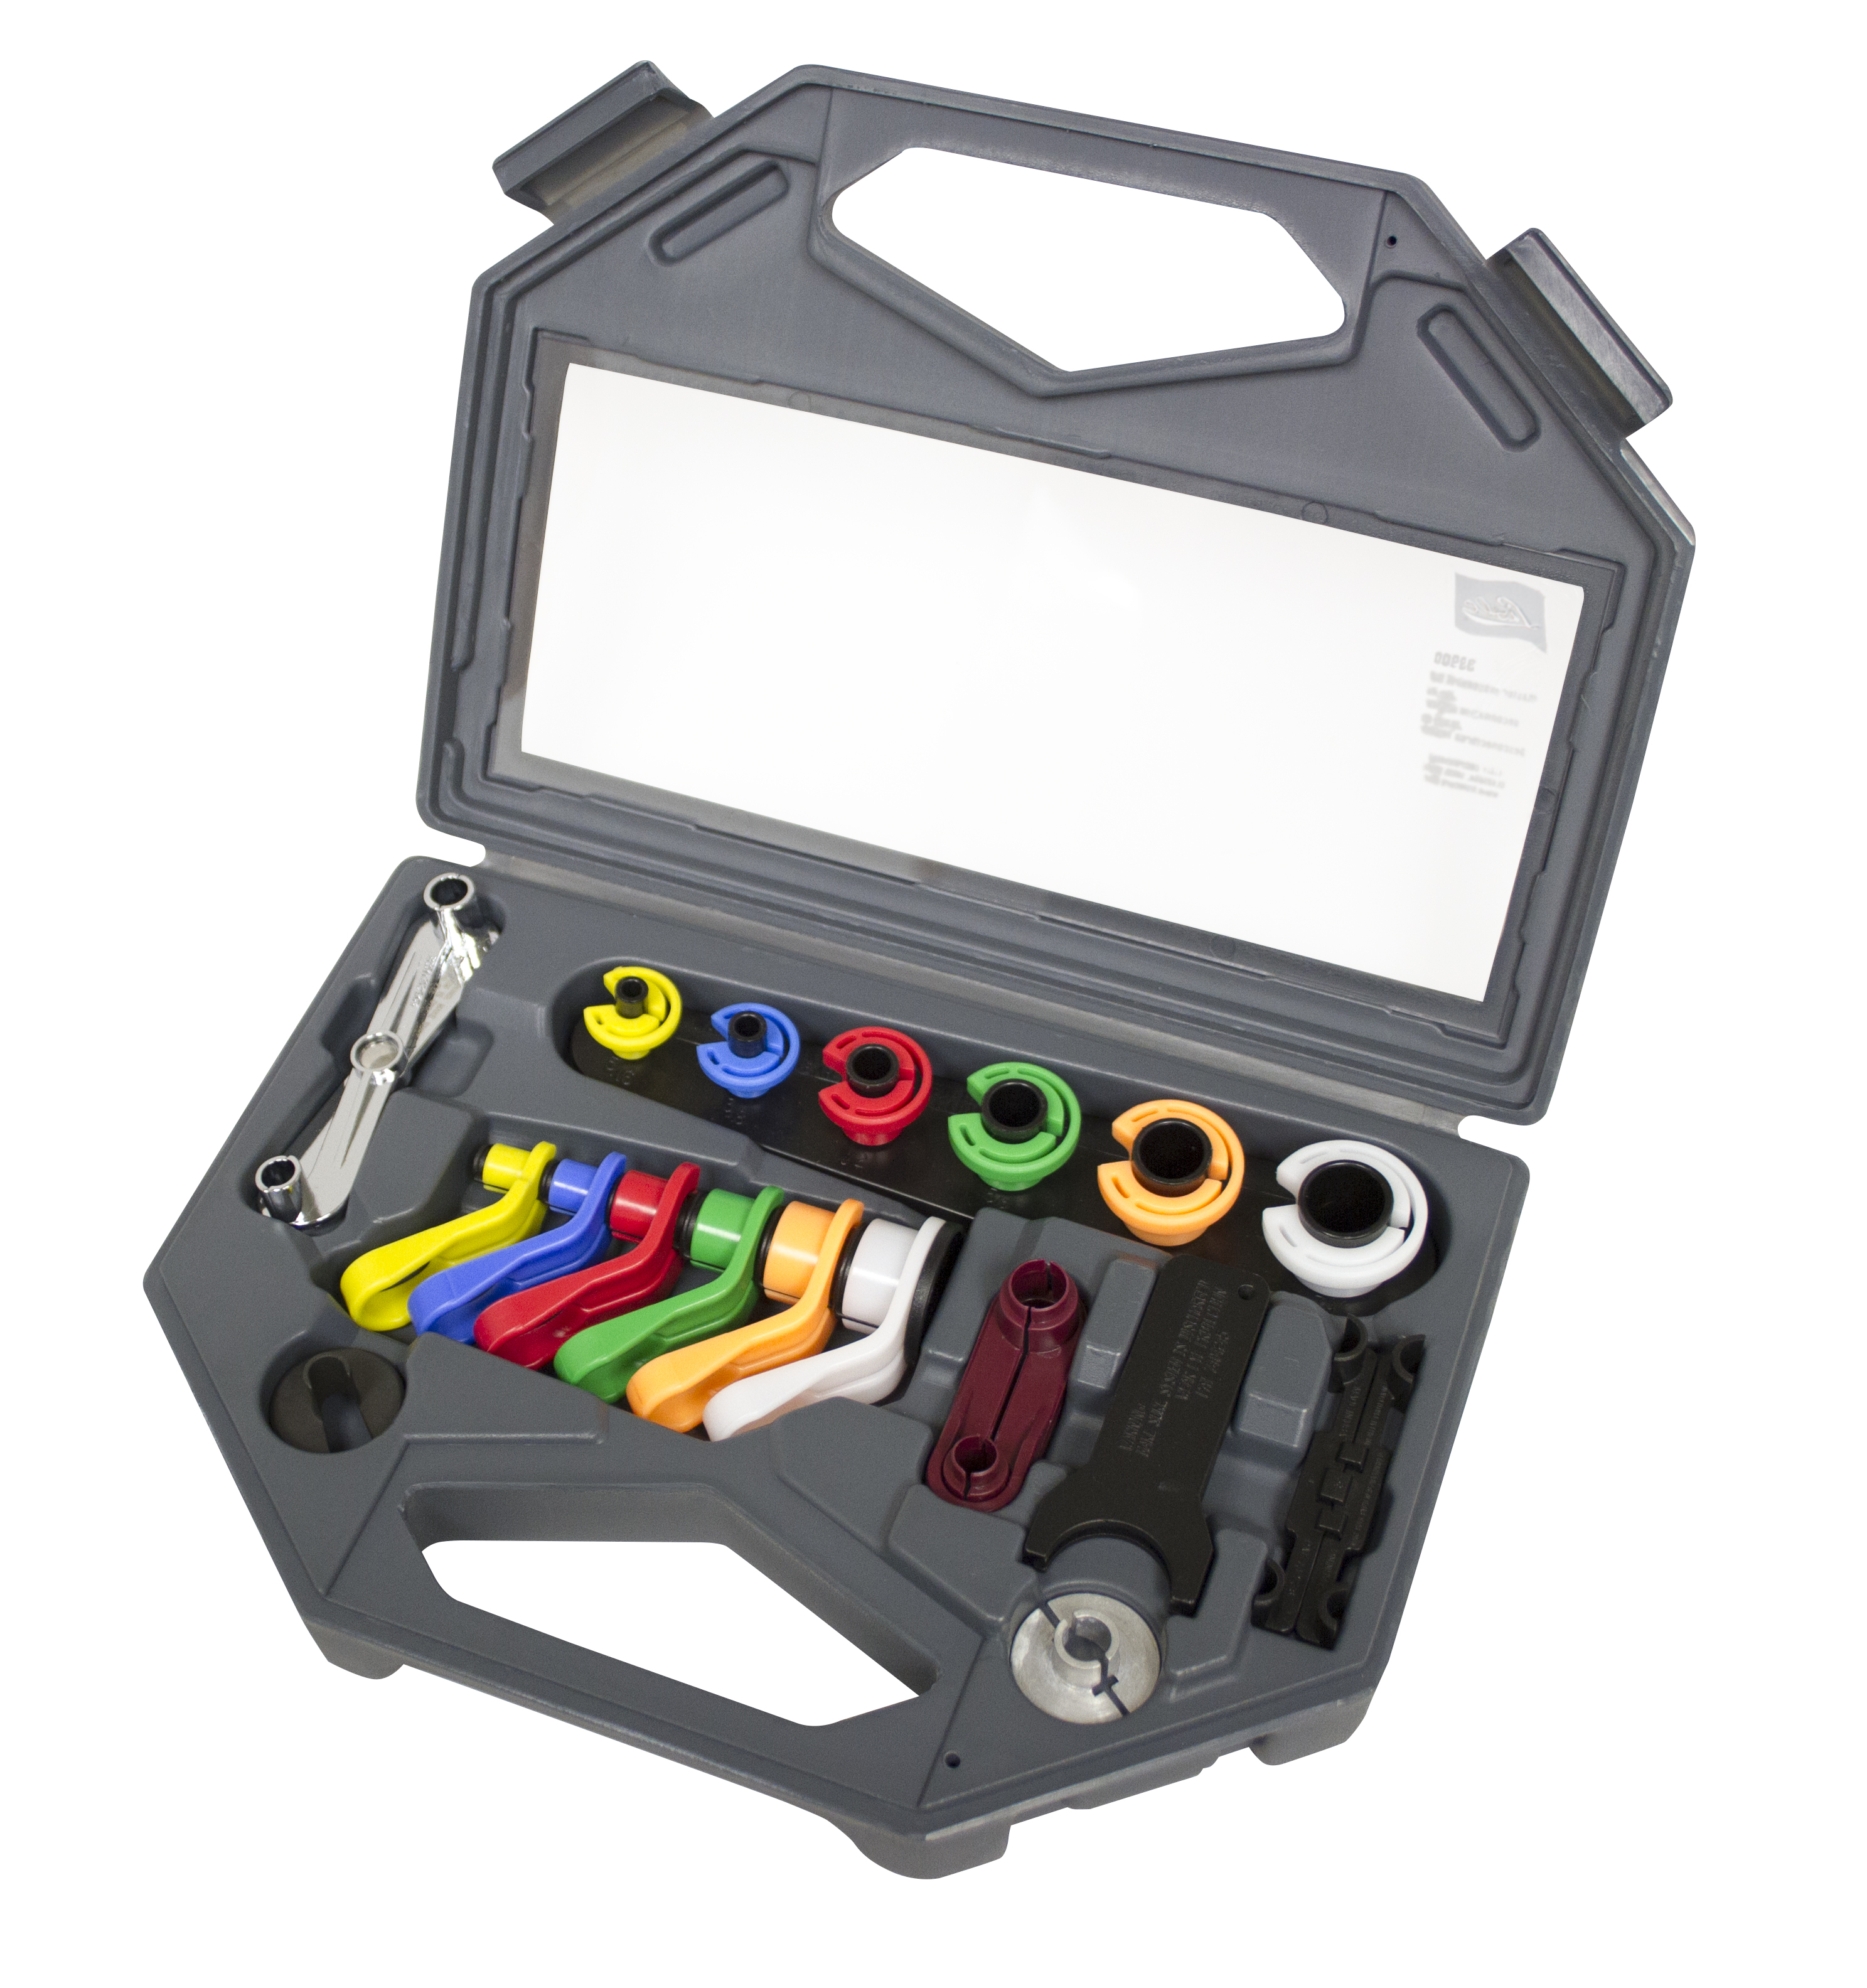 Lisle Master Disconnect Tool Set for A//C /& Fuel Lines 39900